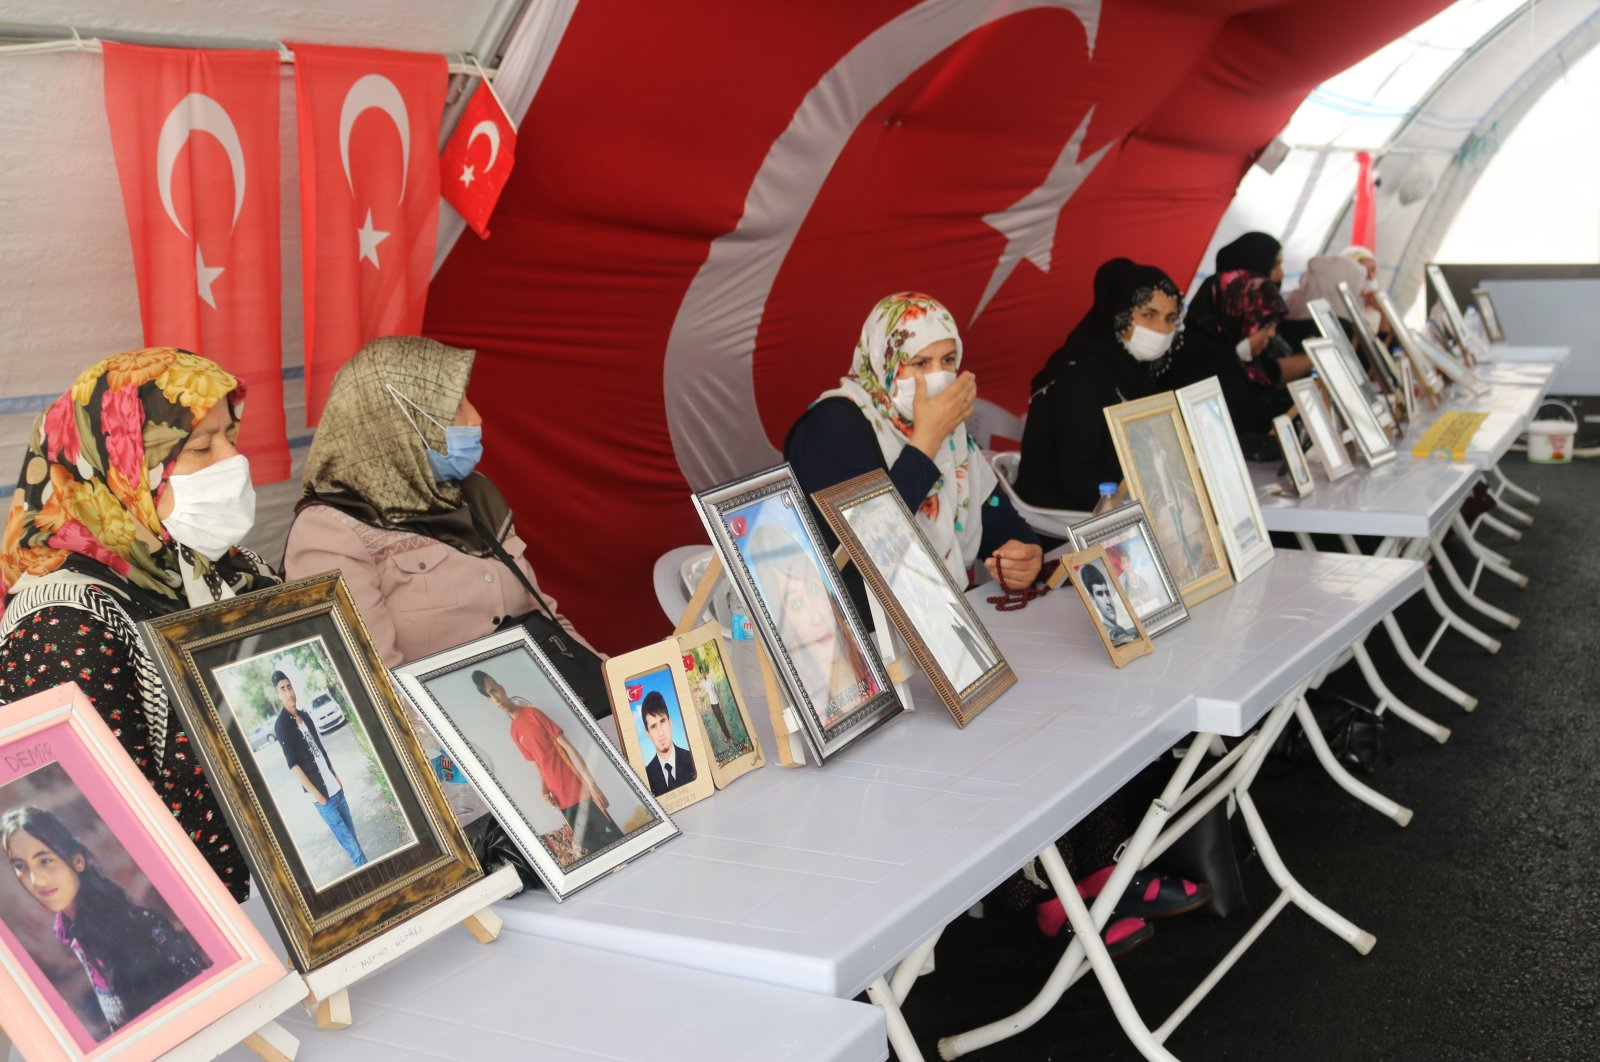 Kurdish mothers have been staging a sit-in protest in front of the pro-PKK Peoples' Democratic Party (HDP) headquarters in southeastern Diyarbakır province since Sept. 3, 2019. (IHA)